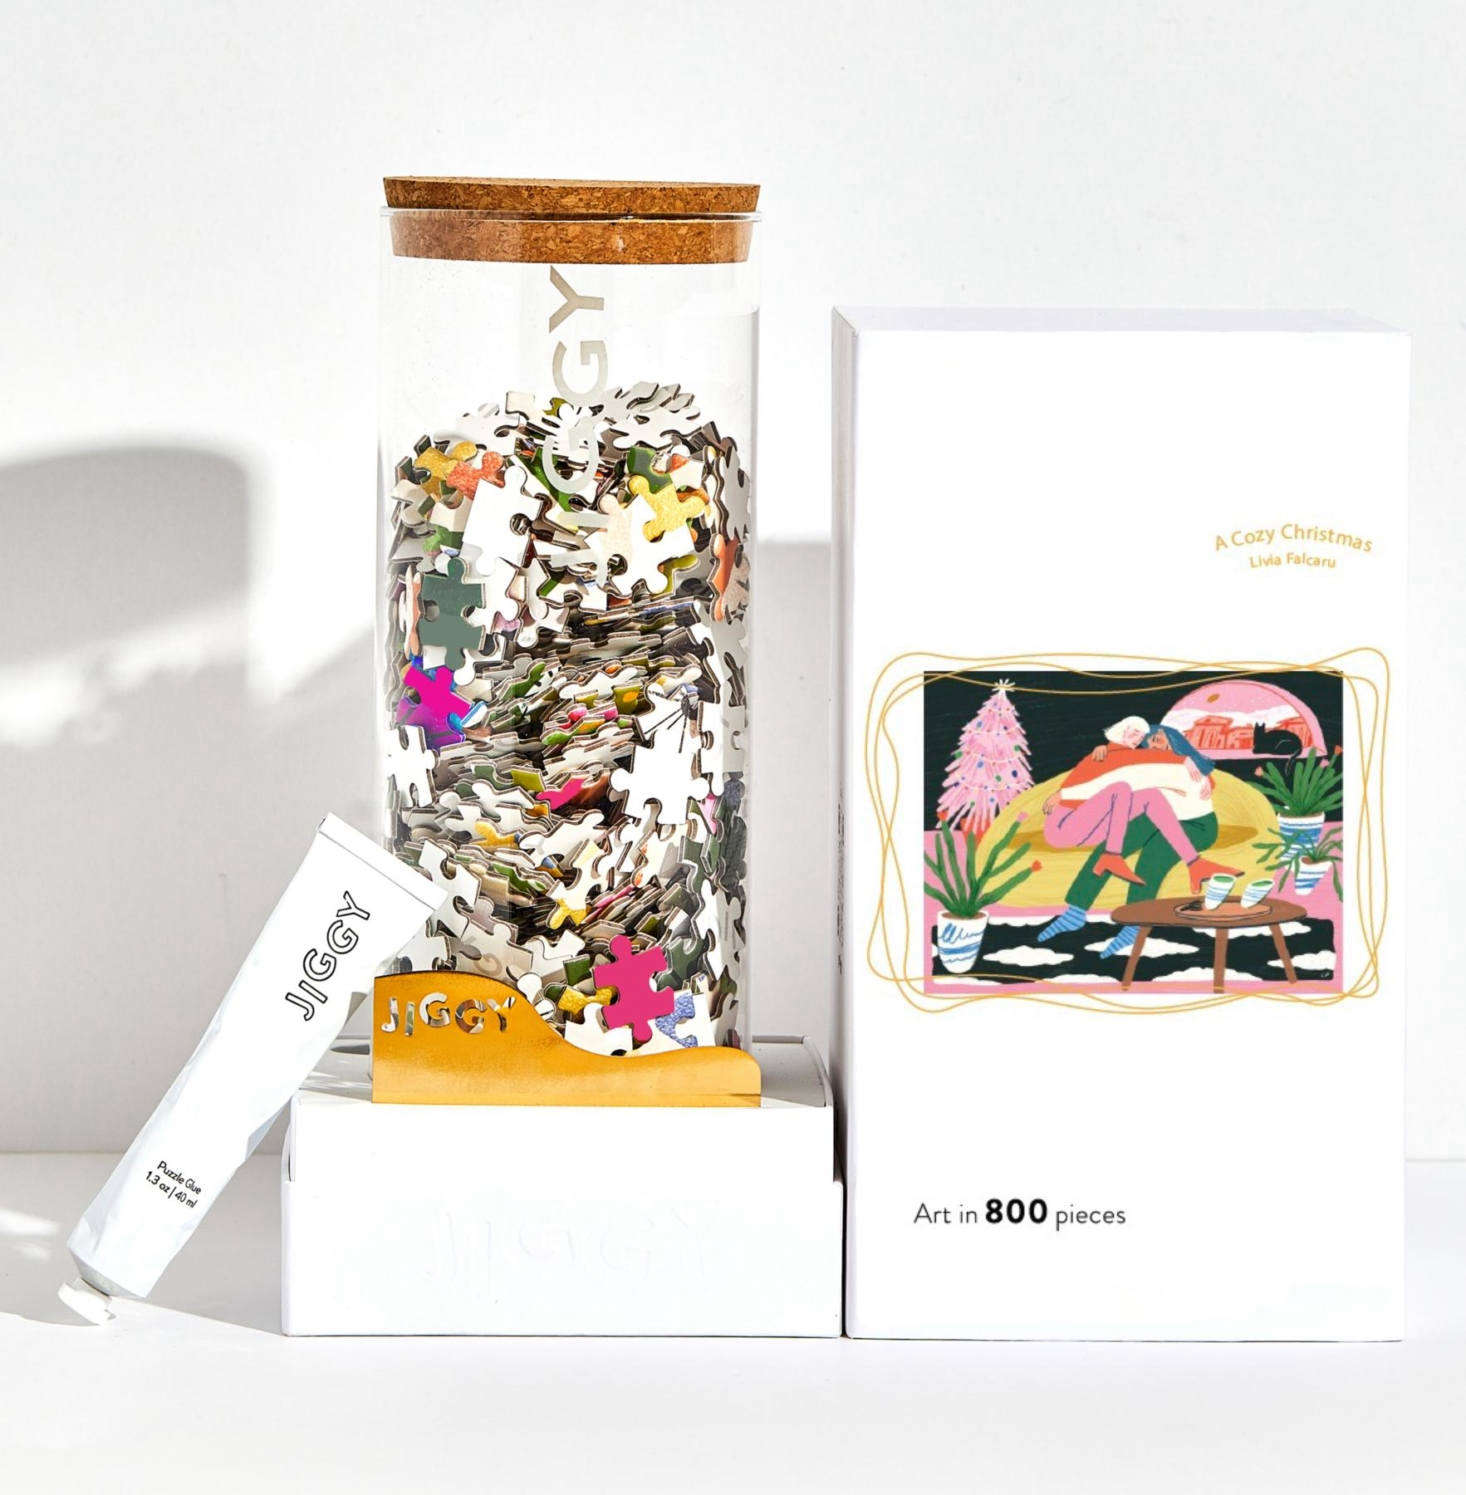 JIGGY was started a few years ago to make puzzles cool again. The company collaborates with female illustrators, including Romanian illustrator Livia Falcaru, who provided the art for A Cozy Christmas puzzle. Each puzzle comes in a reusable glass jar and includes puzzle glue, a straight-edge tool to spread the glue, and a print of the art; $49.